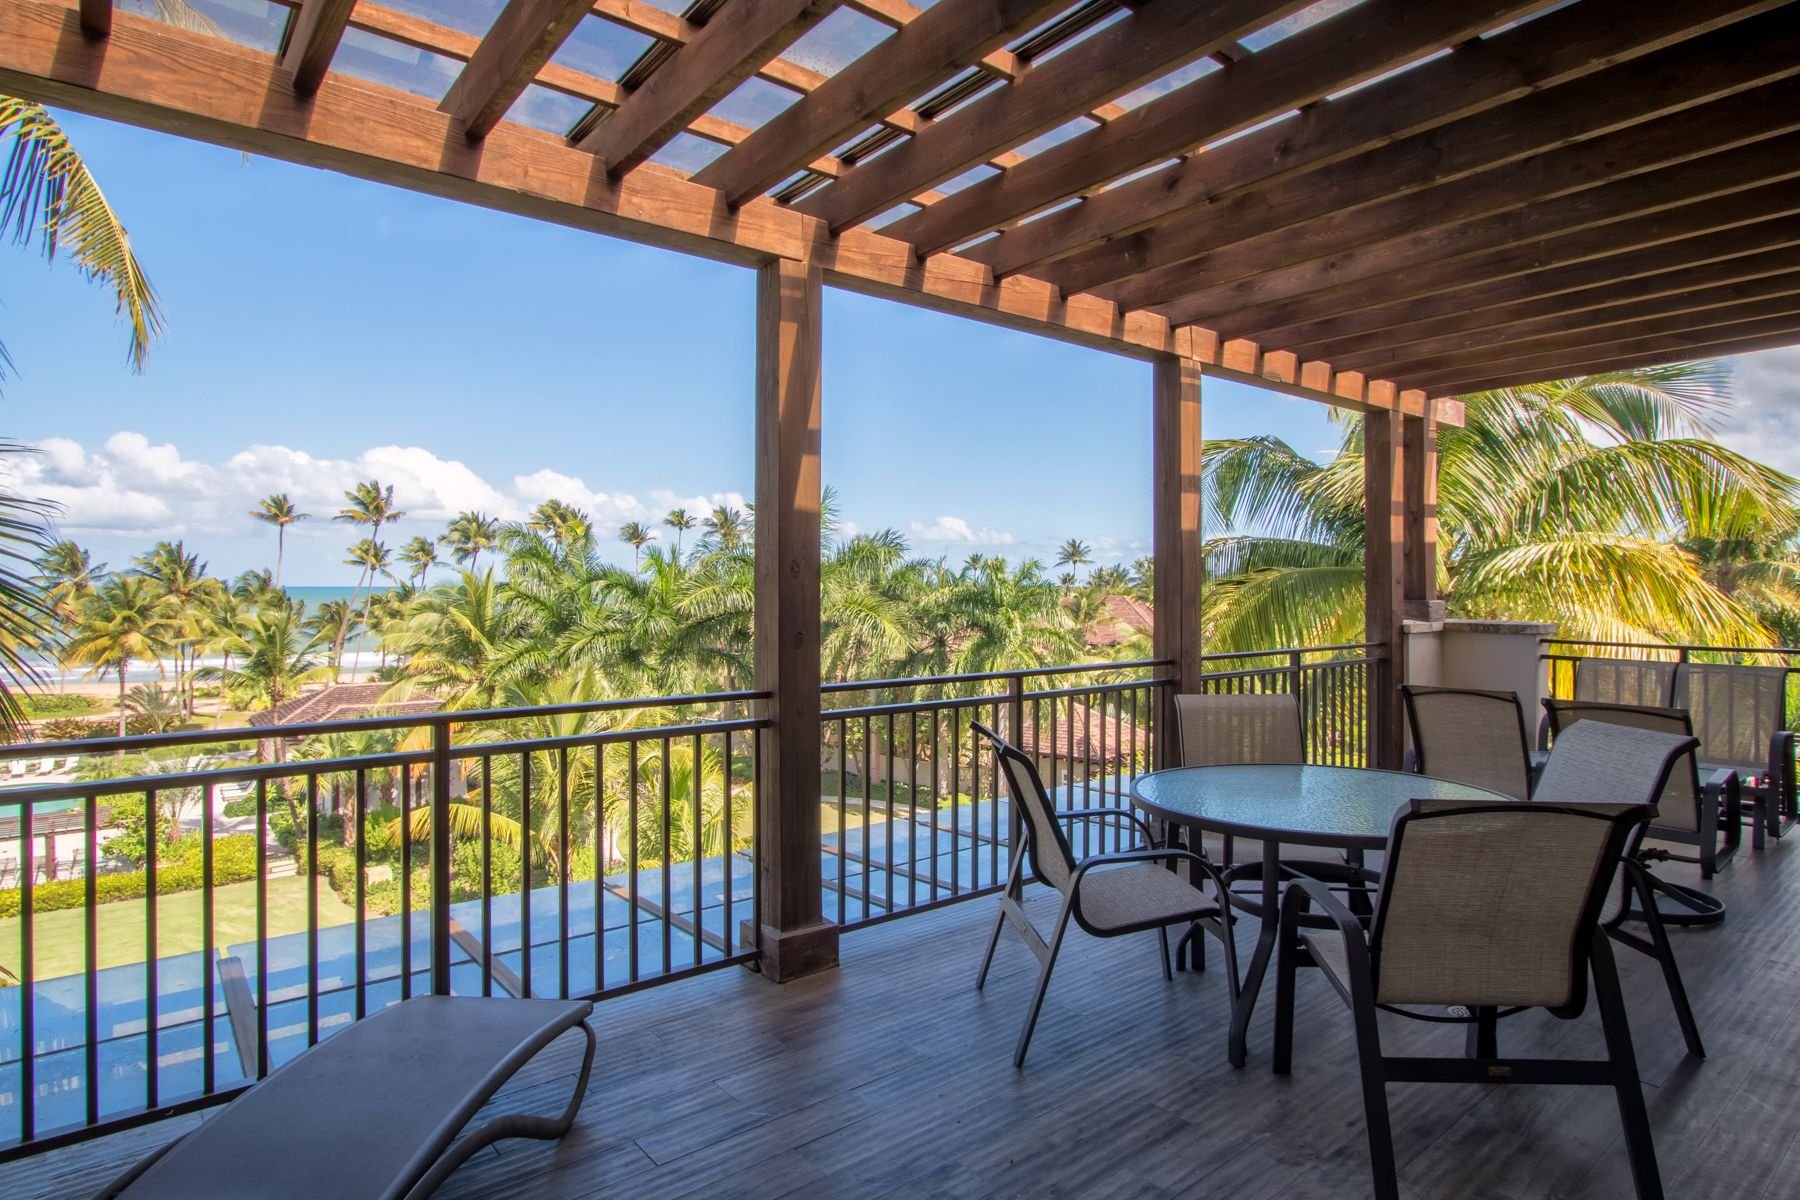 Additional photo for property listing at Beachfront Penthouse at Bahia Beach 417 Las Ventanas II at St. Regis, State Road 187 Km 4.2 Bahia Beach, Puerto Rico 00745 Puerto Rico